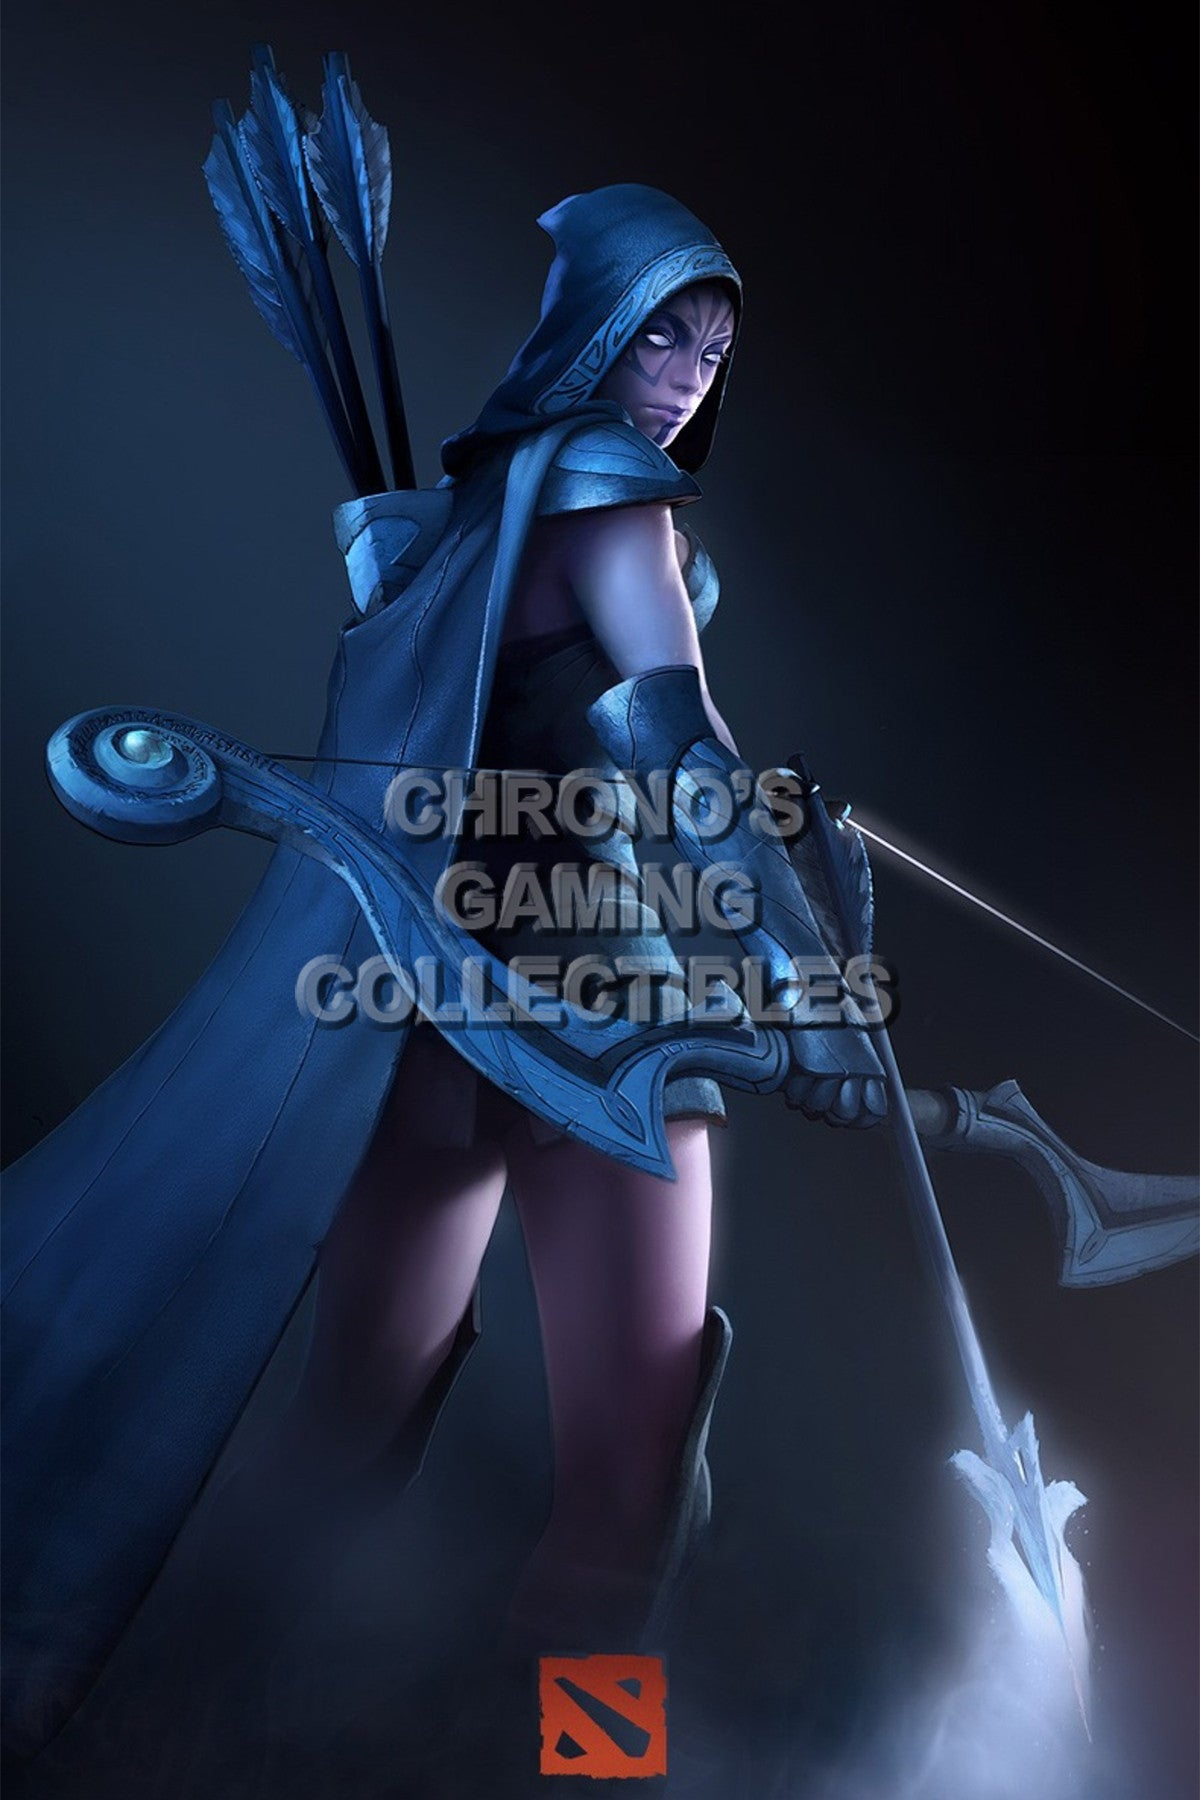 Dota 2 Video Games Poster Cgcposters